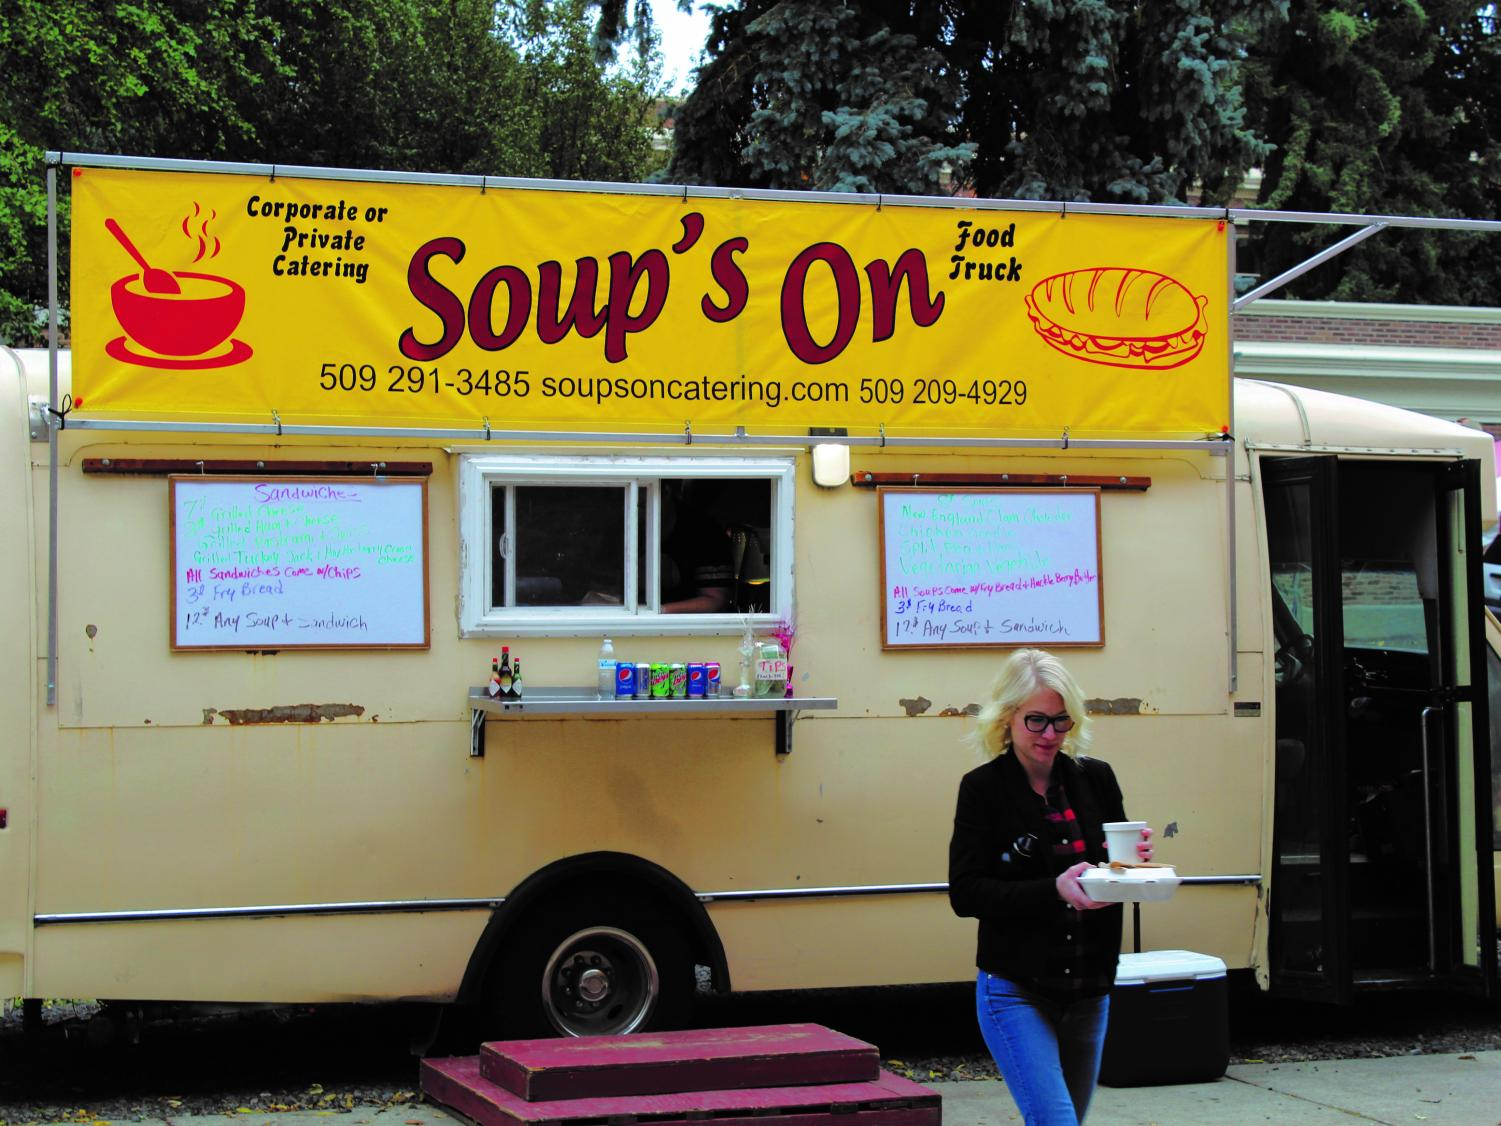 The Soup's On food truck, where students can enjoy a hot, nourishing bowl of soup accompanied by a fresh sandwich. Leroy and Jennie Mitchell's food truck made its debut in August 2015 | Mckenzie Ford for The Easterner